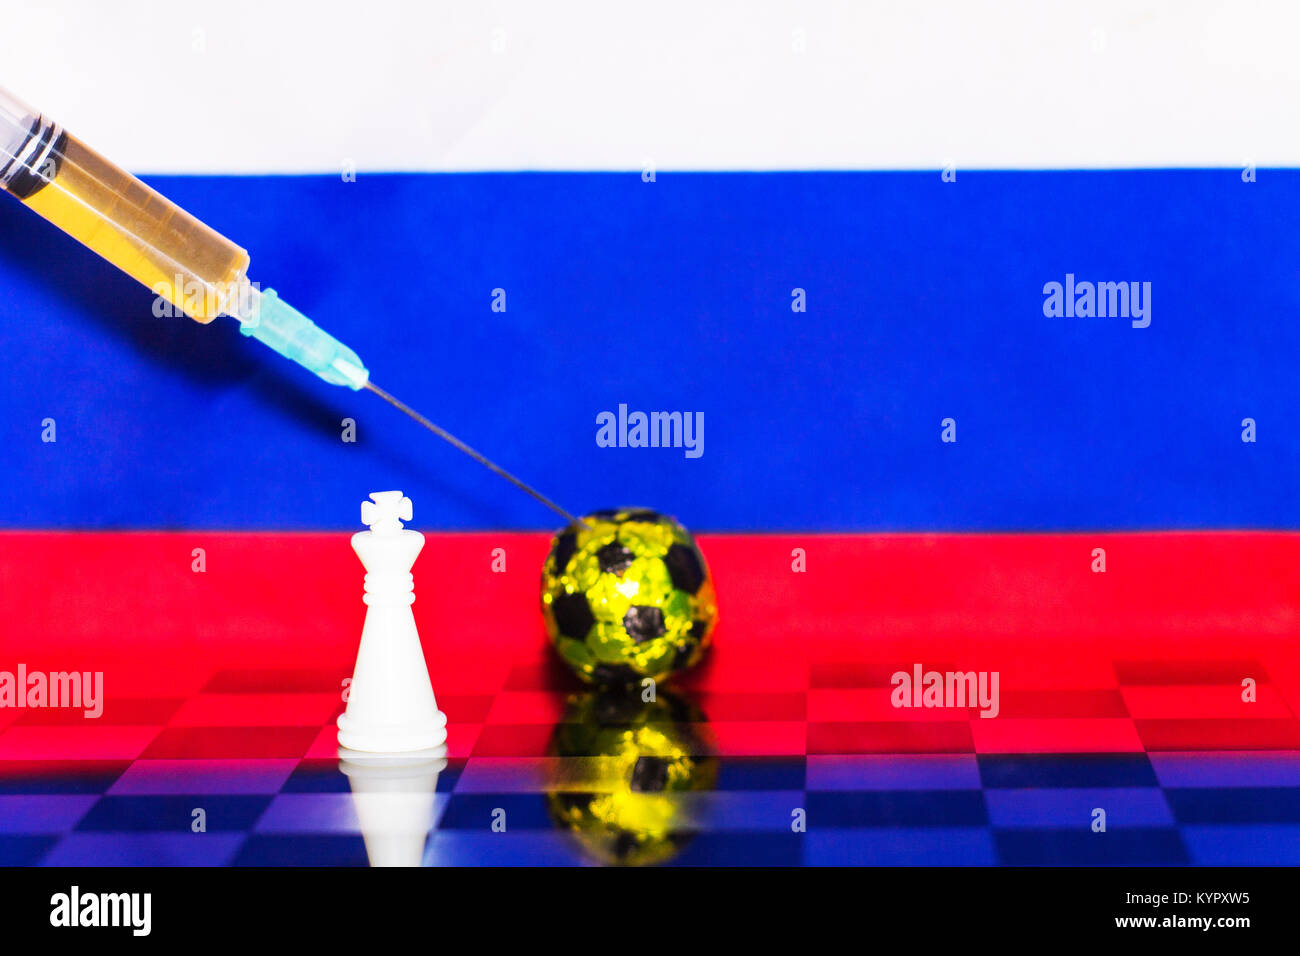 Russia Flag Chess as a football. FIFA World Cup 2018. A white figure near the golden ball and a syringe with doping. - Stock Image